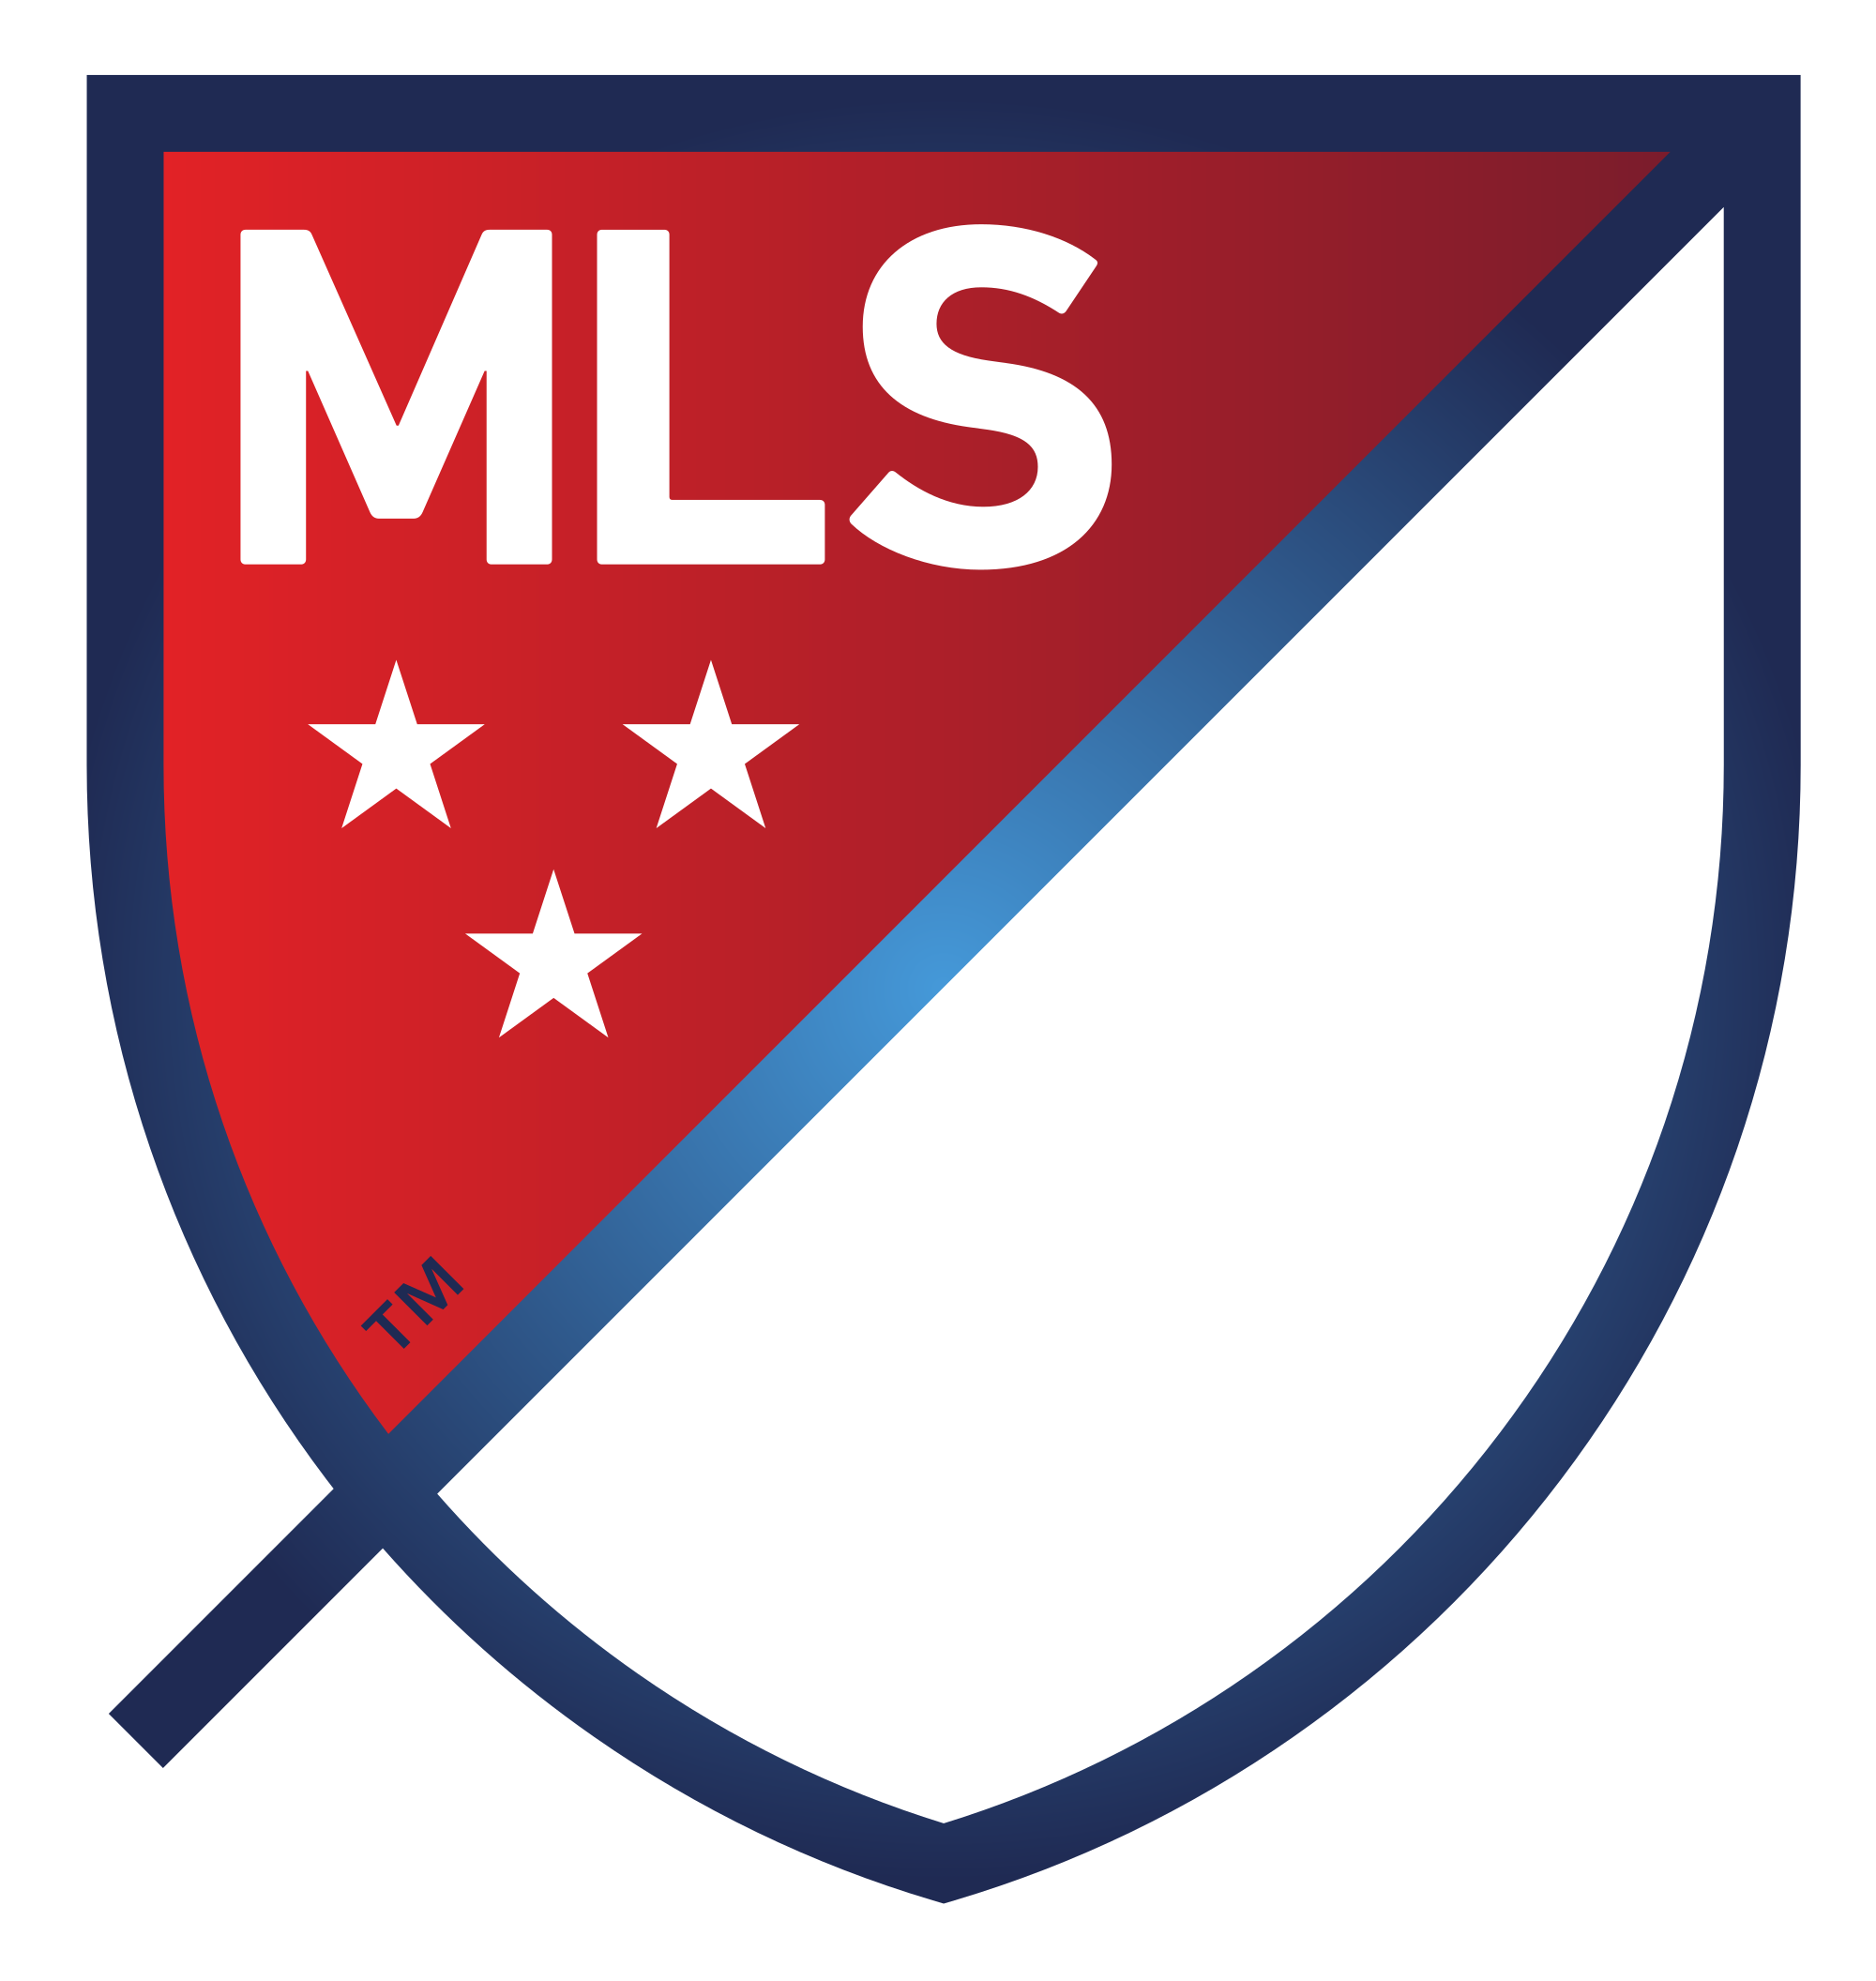 Mls logo png. File svg wikimedia commons